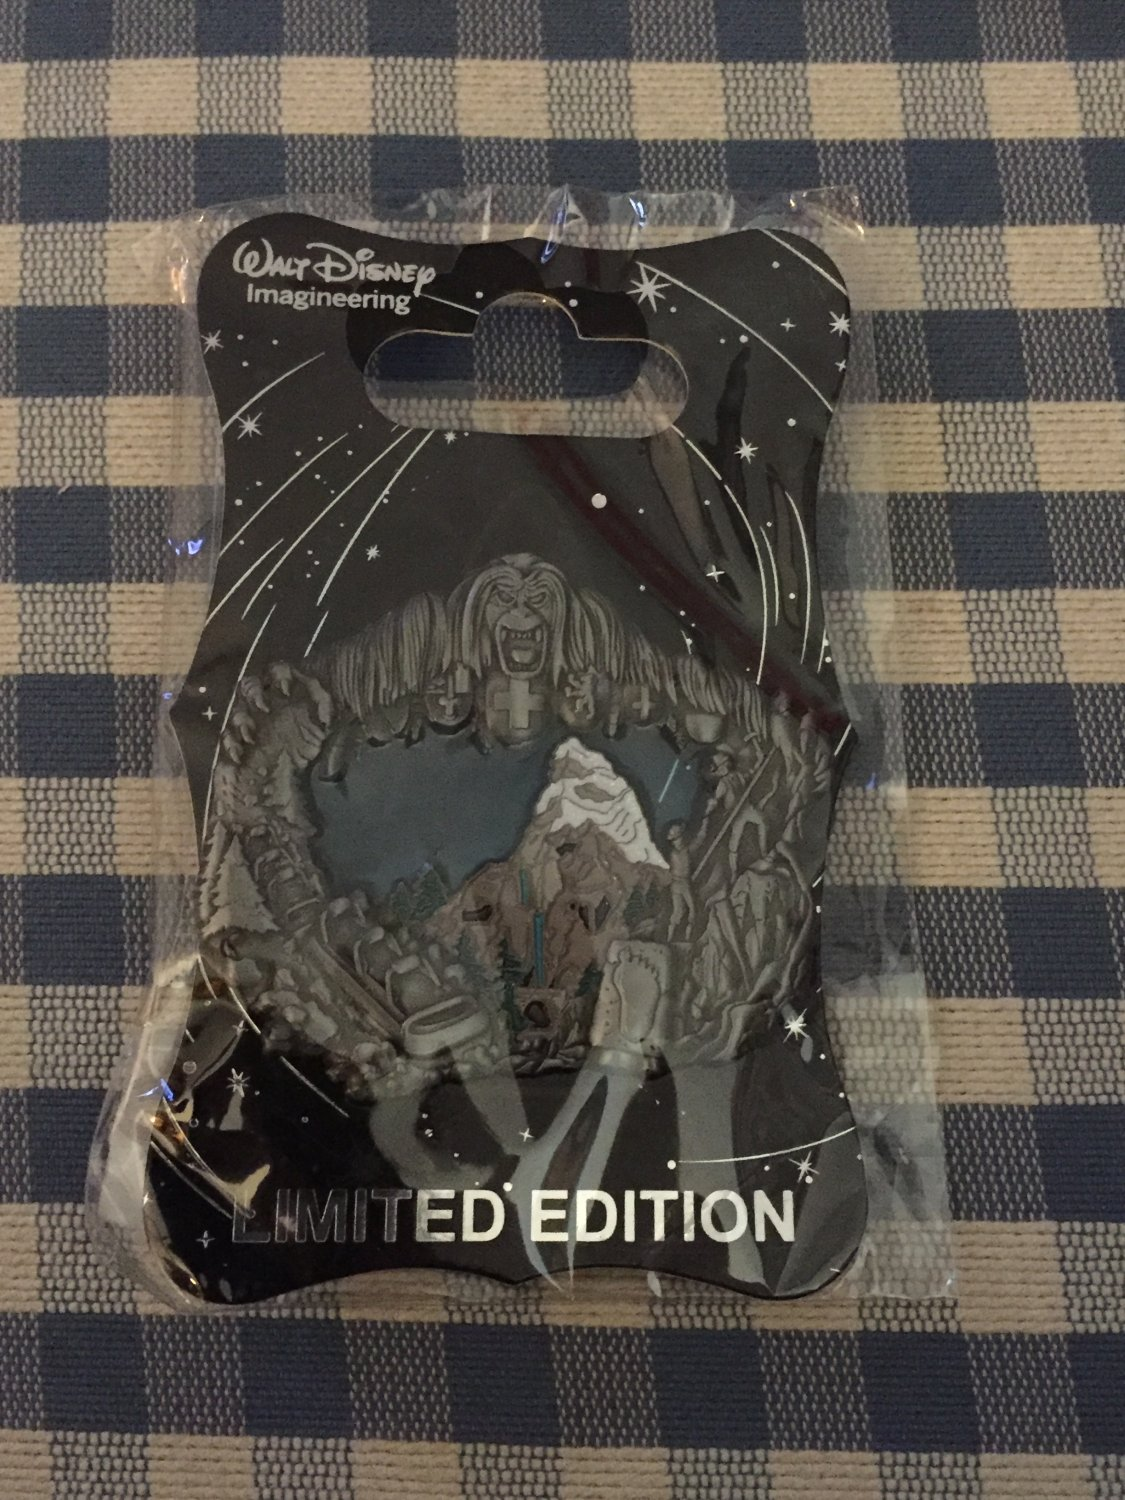 D23 Expo 2015 Imagineering Disneyland MATTERHORN Pewter Stained Glass Pin LE300